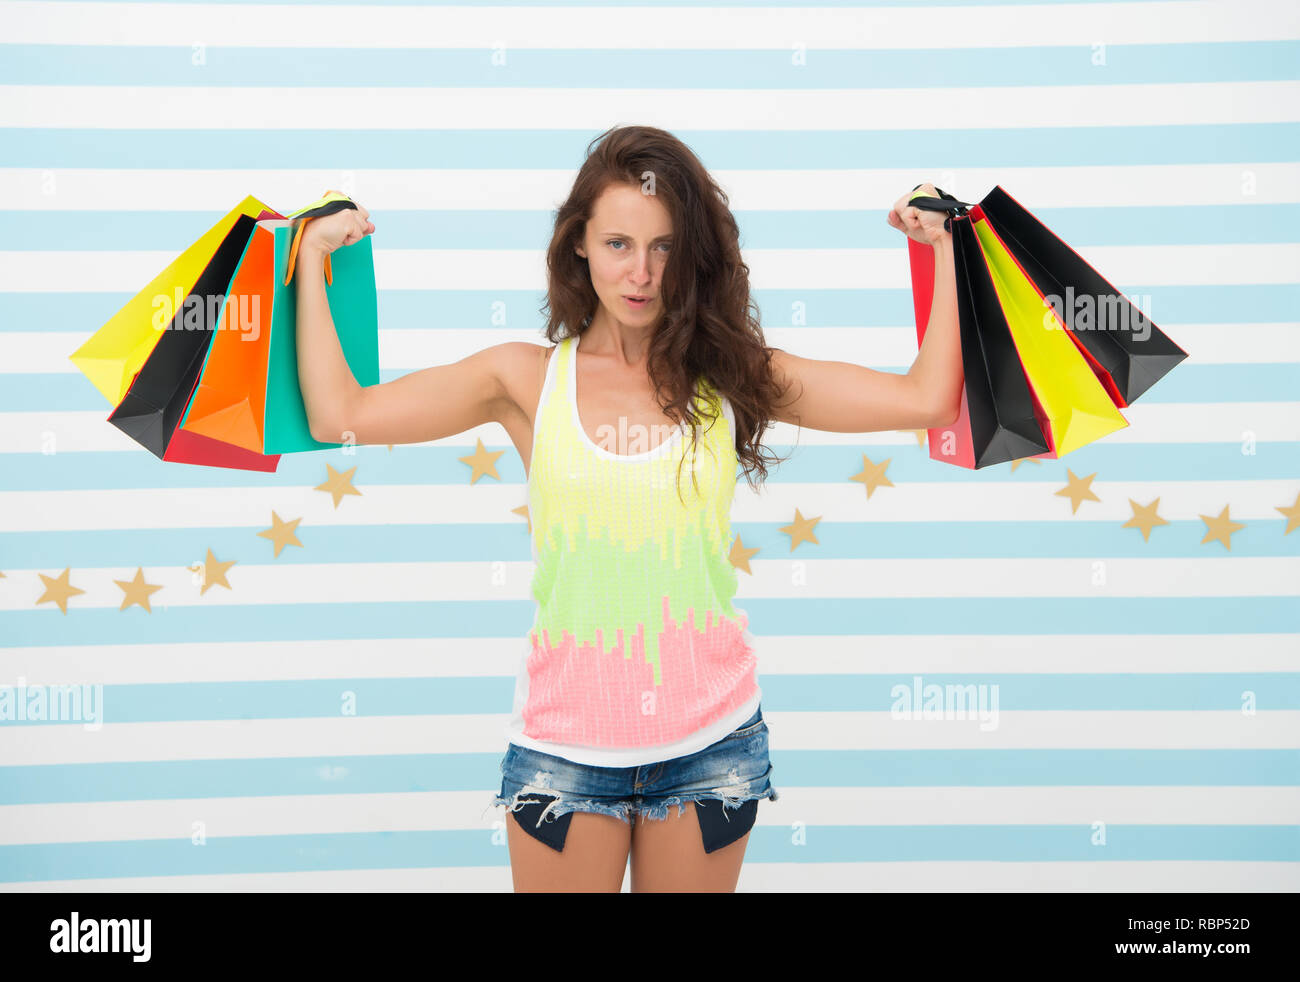 shopping girl with heavy bags. after day shopping. muscular girl hold purchase or present packages. strong shopaholic hold heavy bags. sale benefit. i want this. i need some retail therapy - Stock Image